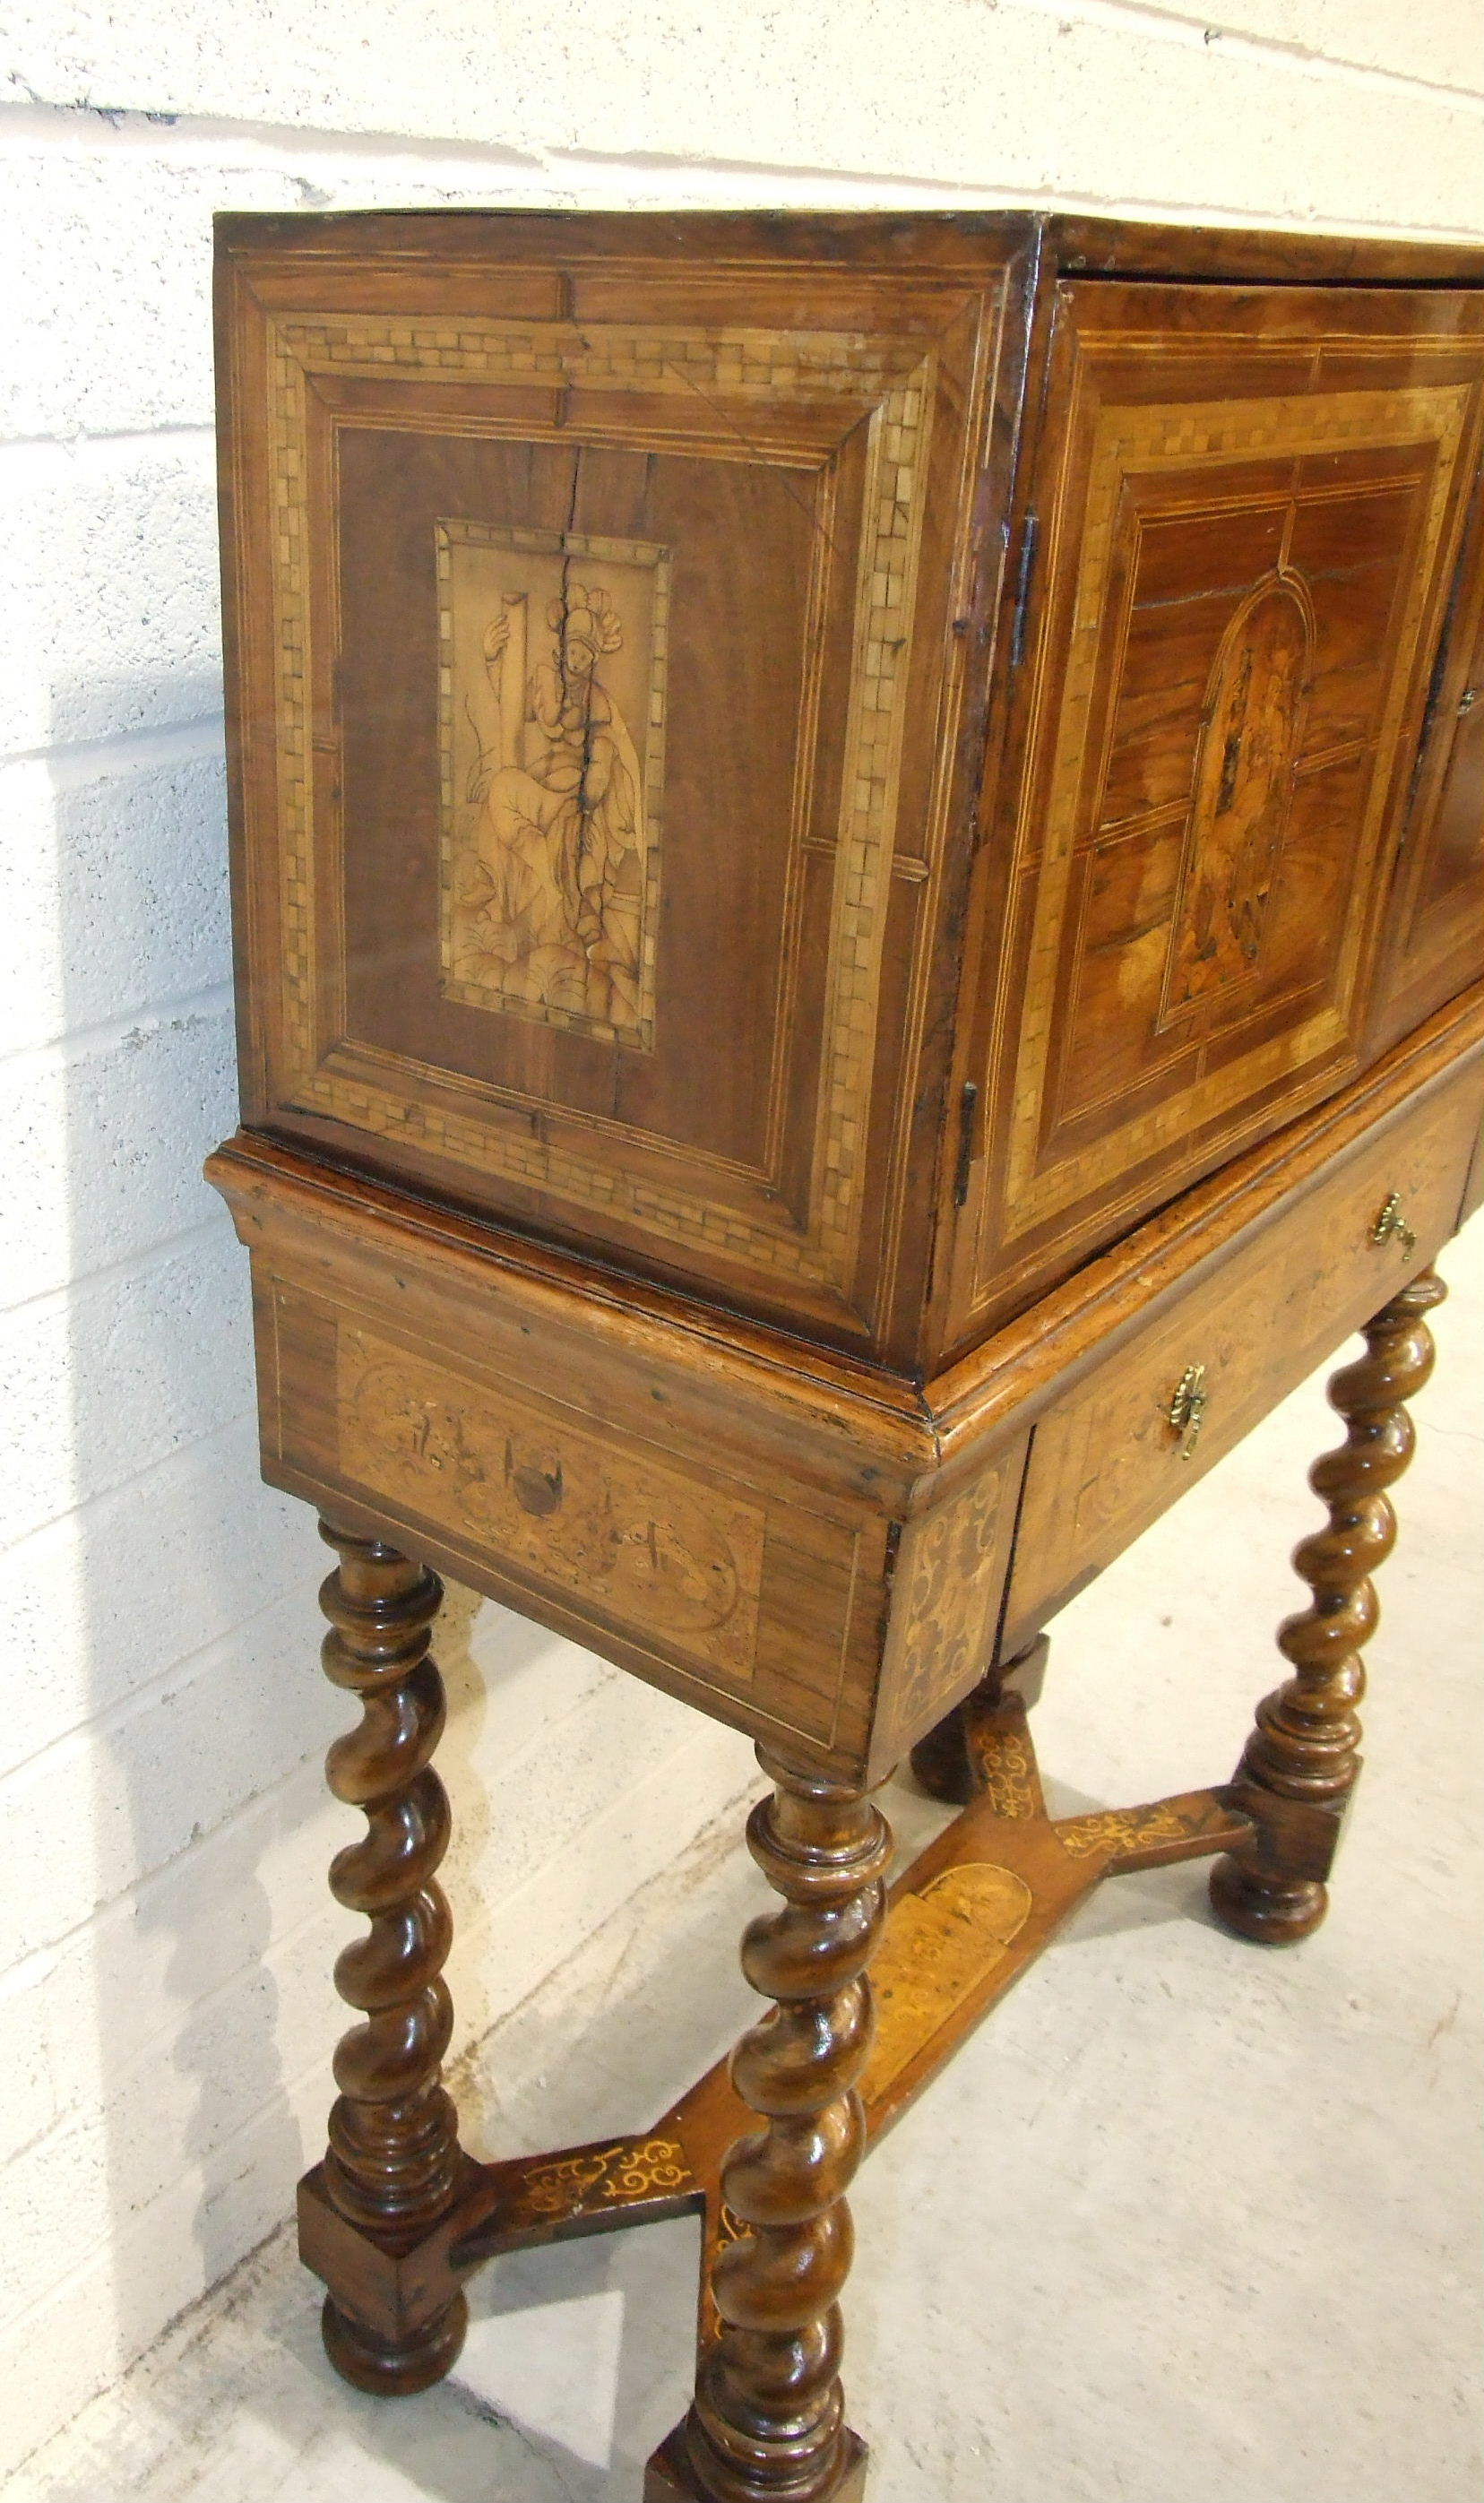 Lot 61 - A mainly 18th-century-style Continental table cabinet with overall marquetry and parquetry inlay,